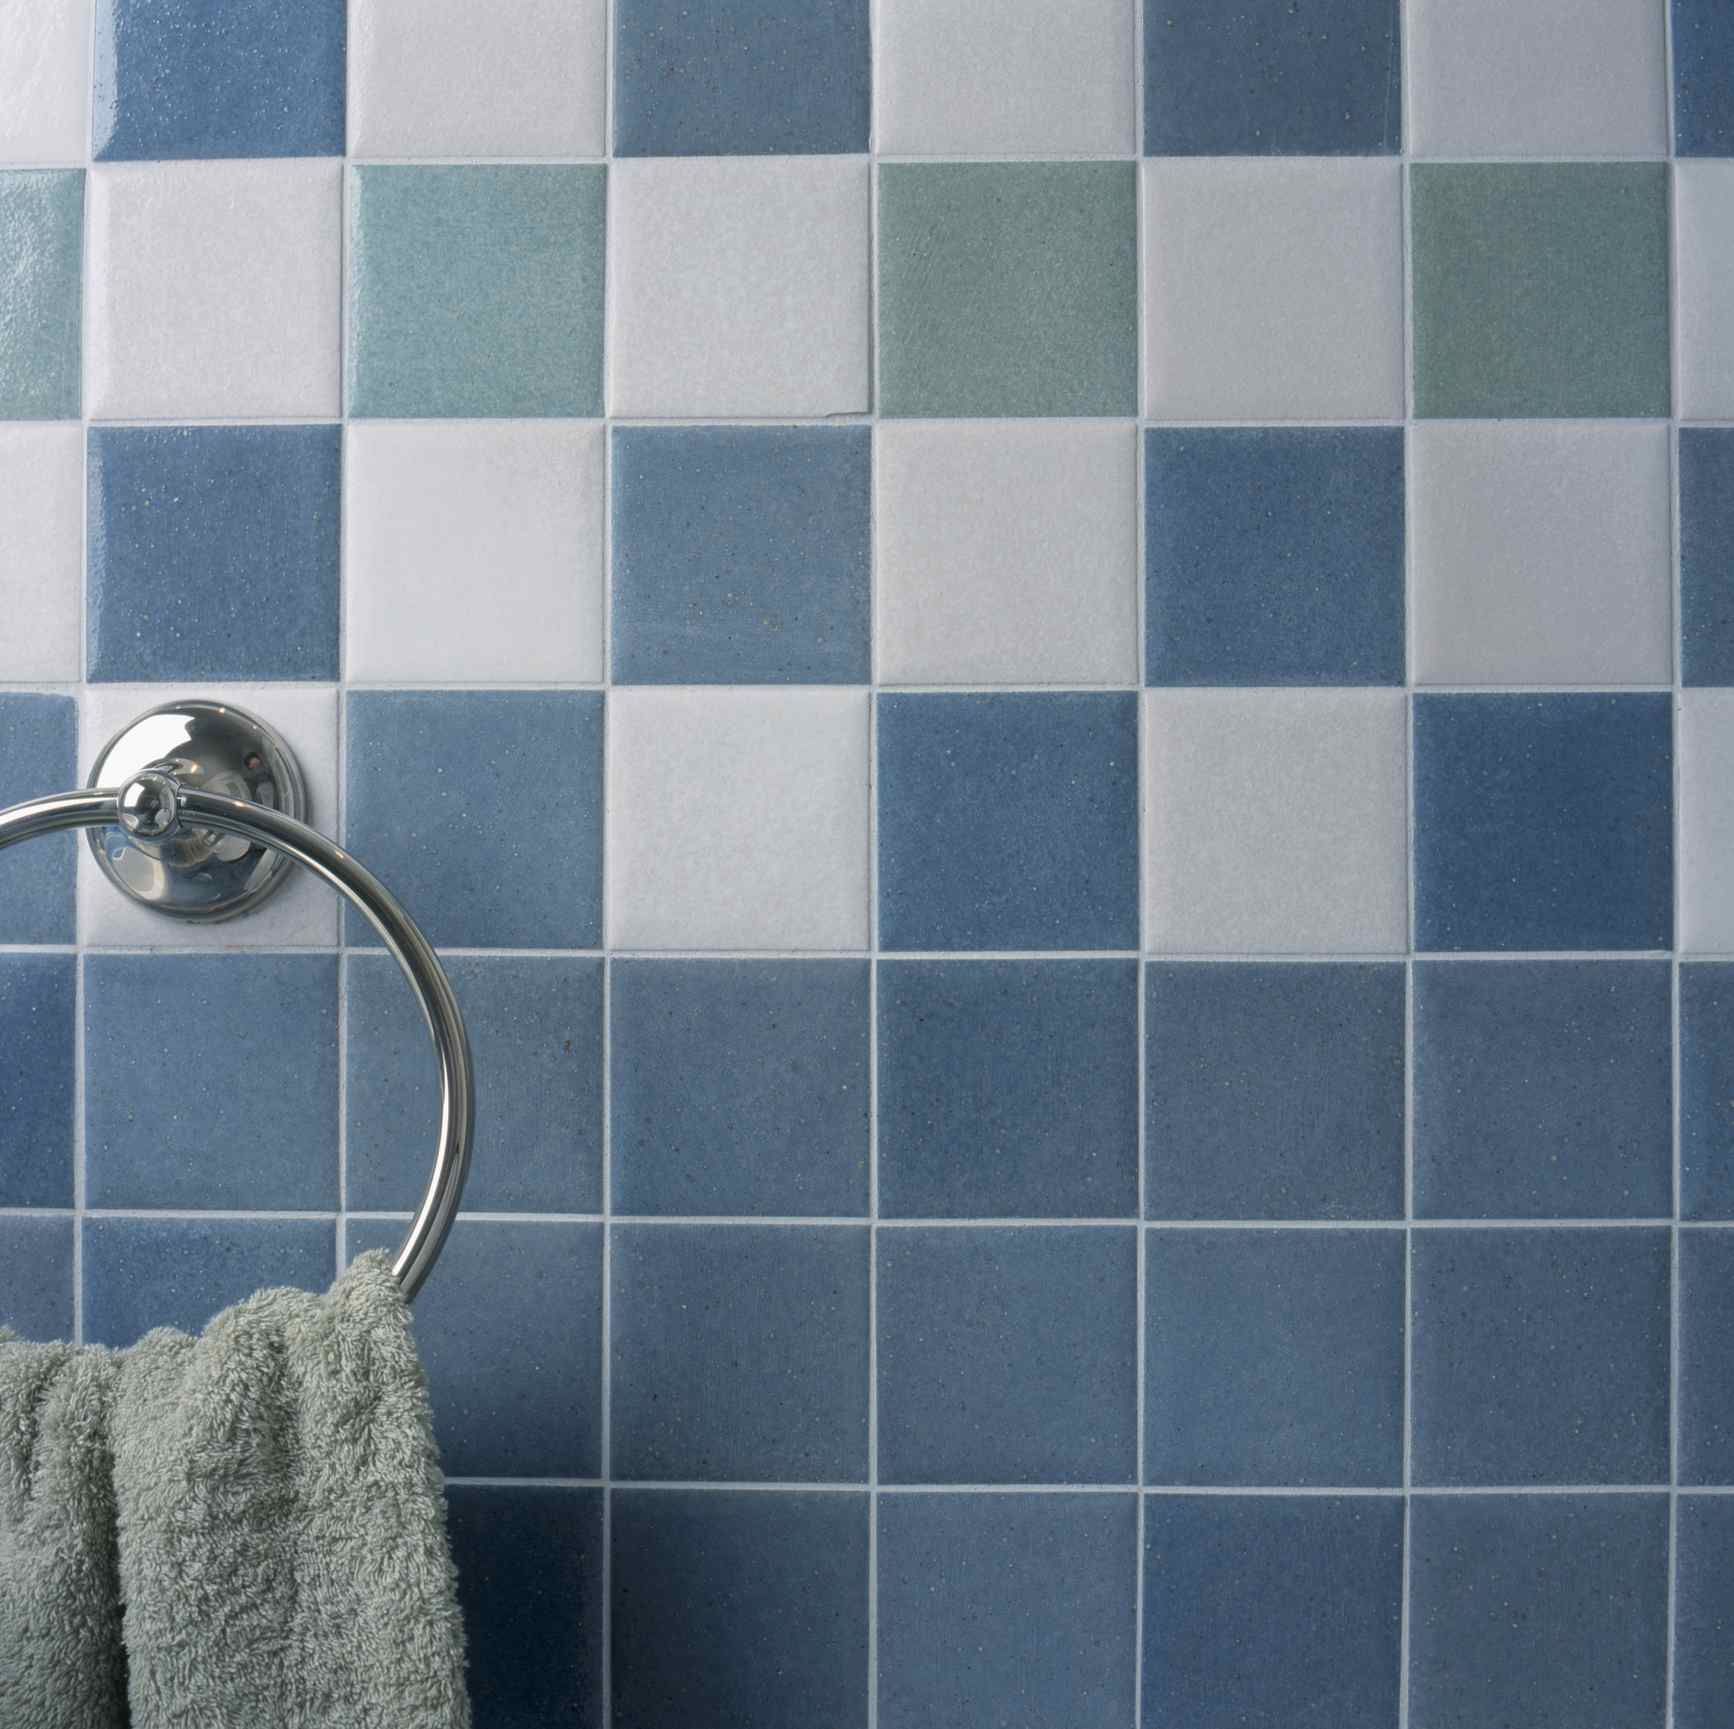 How to Easily Remove Old Tile Grout